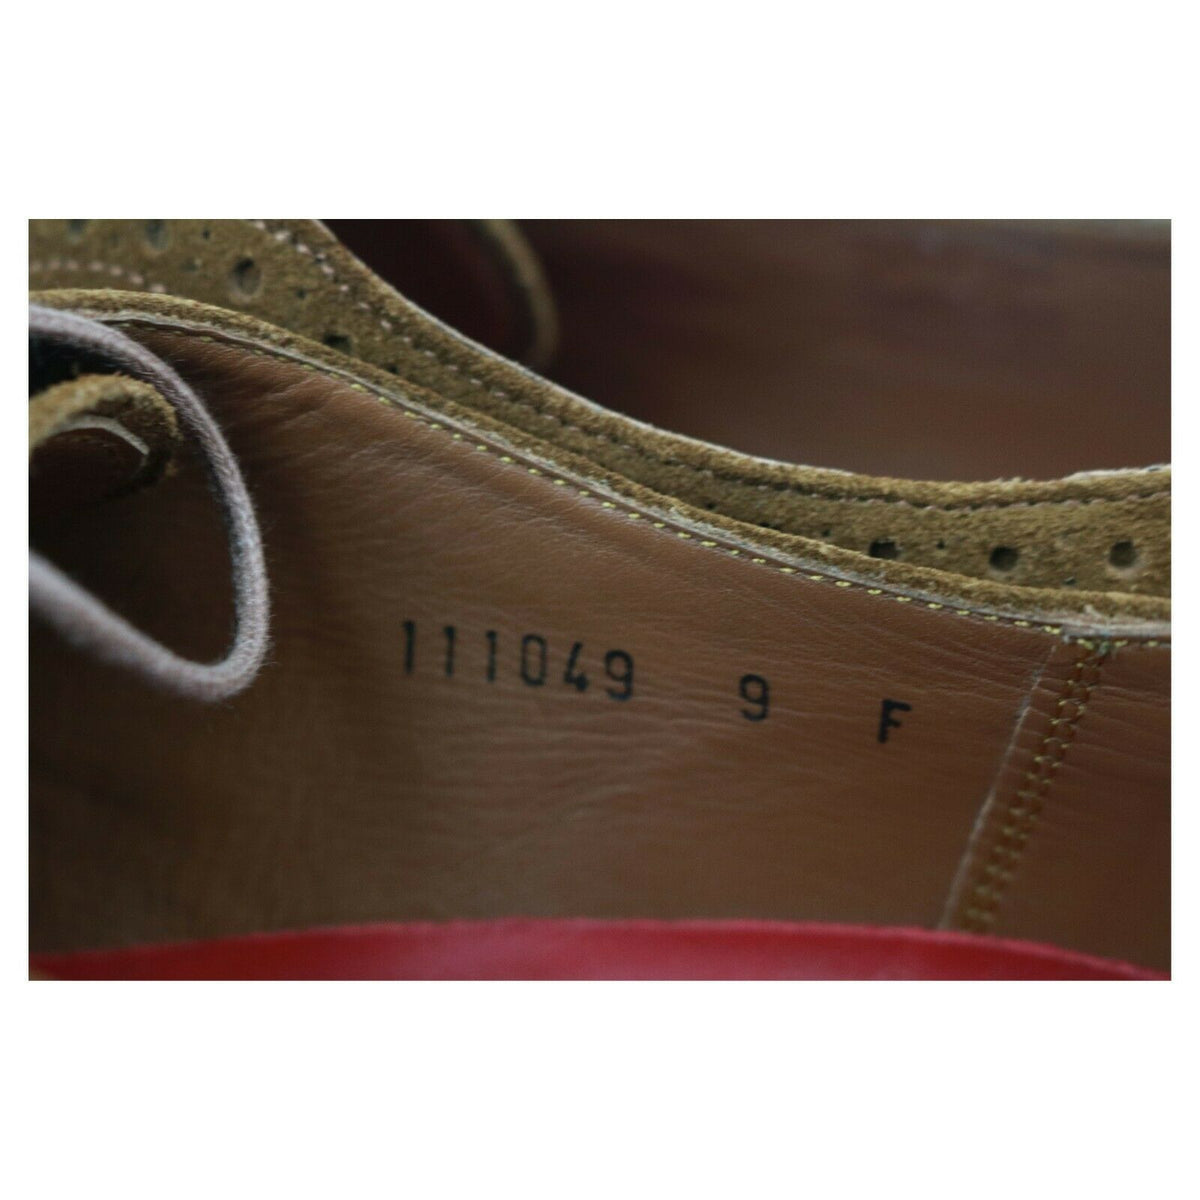 Grenson 'Stanley' Tan Brown Suede Brogues UK 9 F